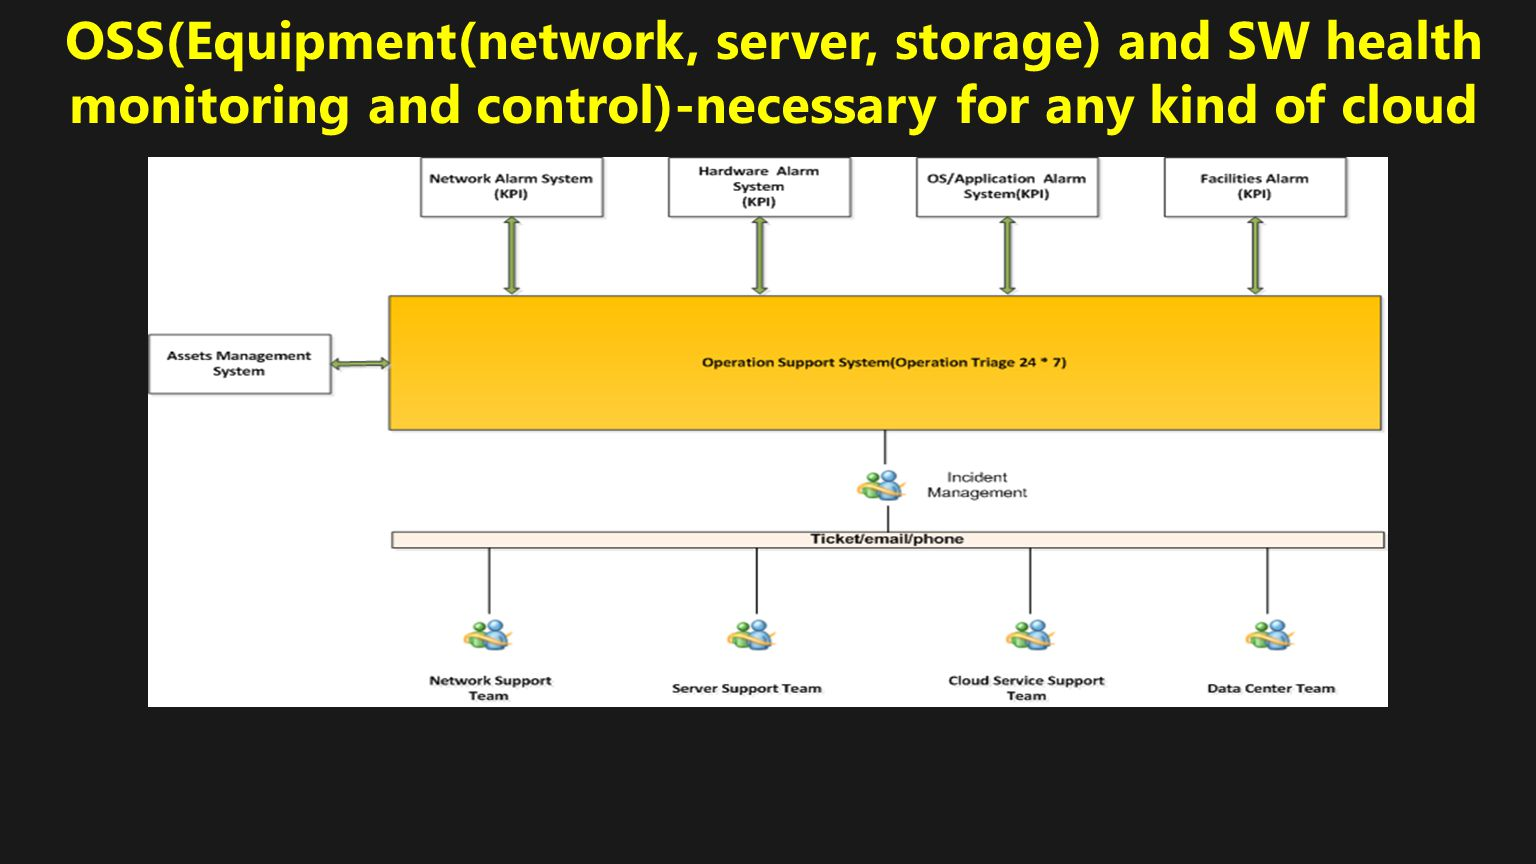 OSS(Equipment(network, server, storage) and SW health monitoring and control)-necessary for any kind of cloud